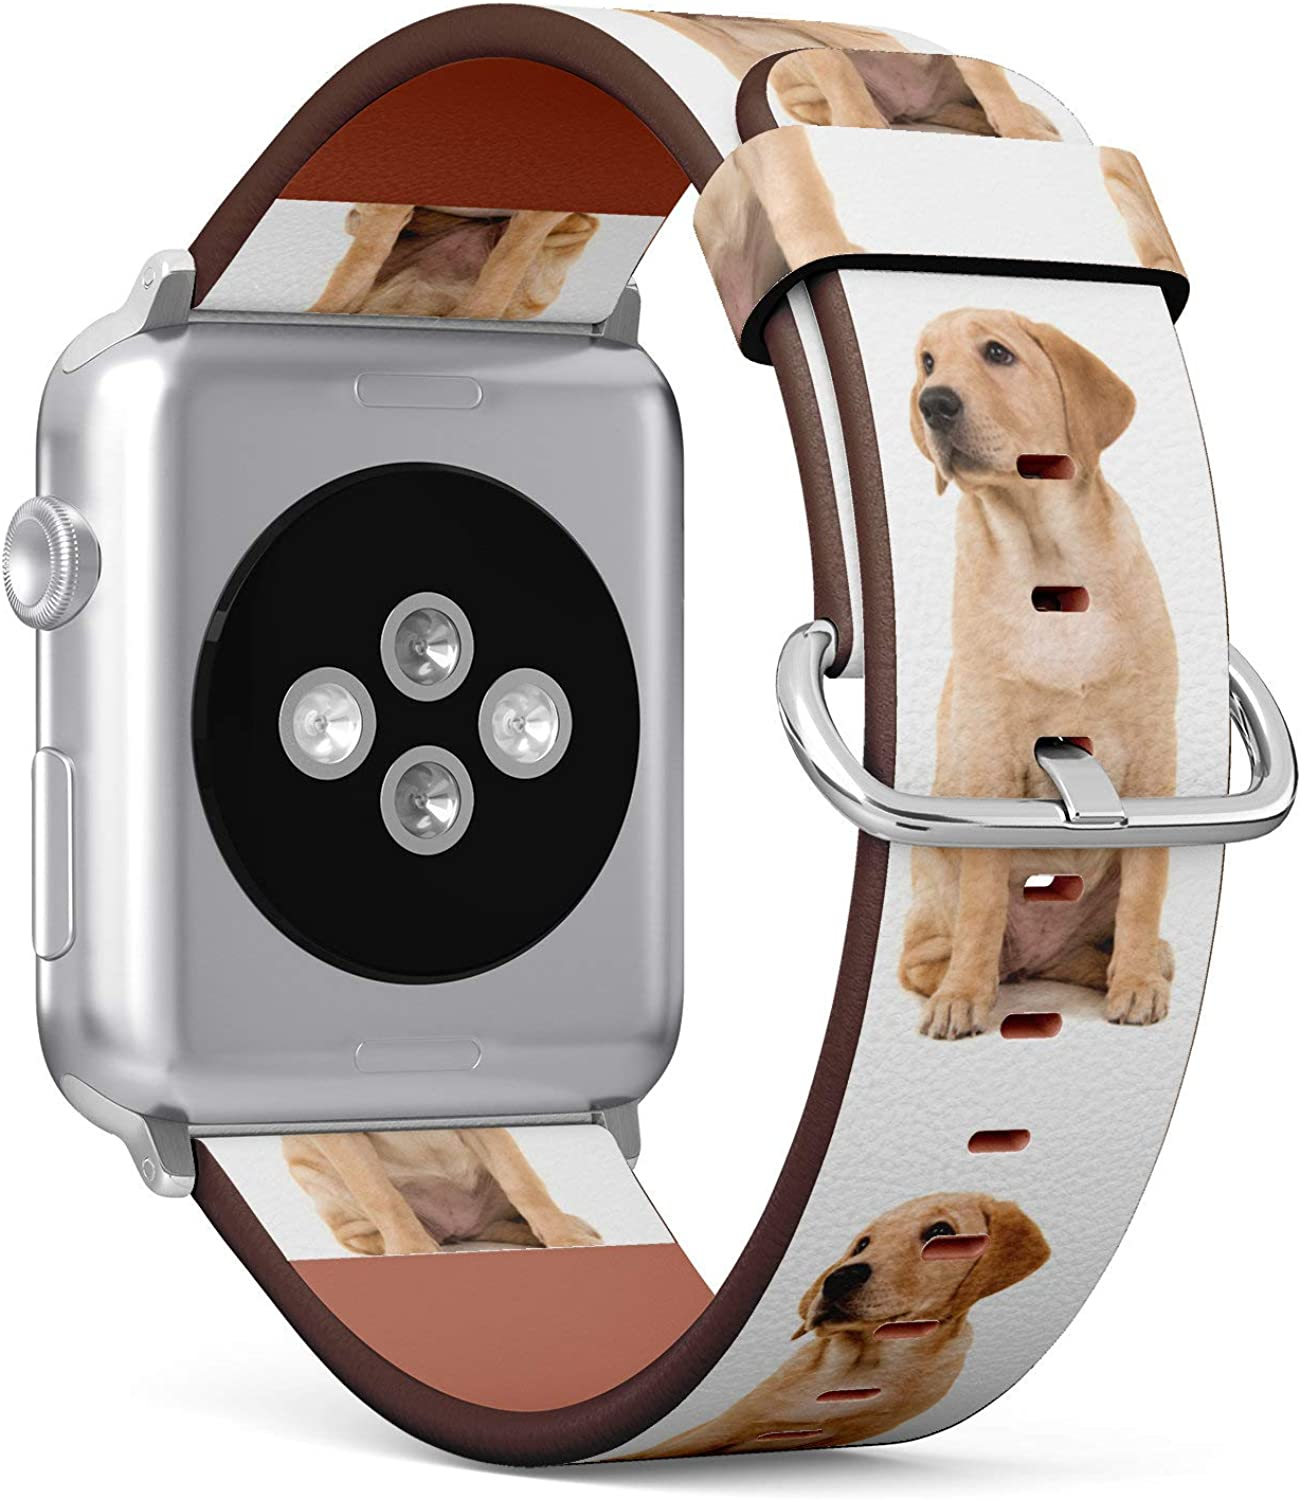 (Golden Retriever Puppy) Patterned Leather Wristband Strap for Apple Watch Series 4/3/2/1 gen,Replacement for iWatch 42mm / 44mm Bands